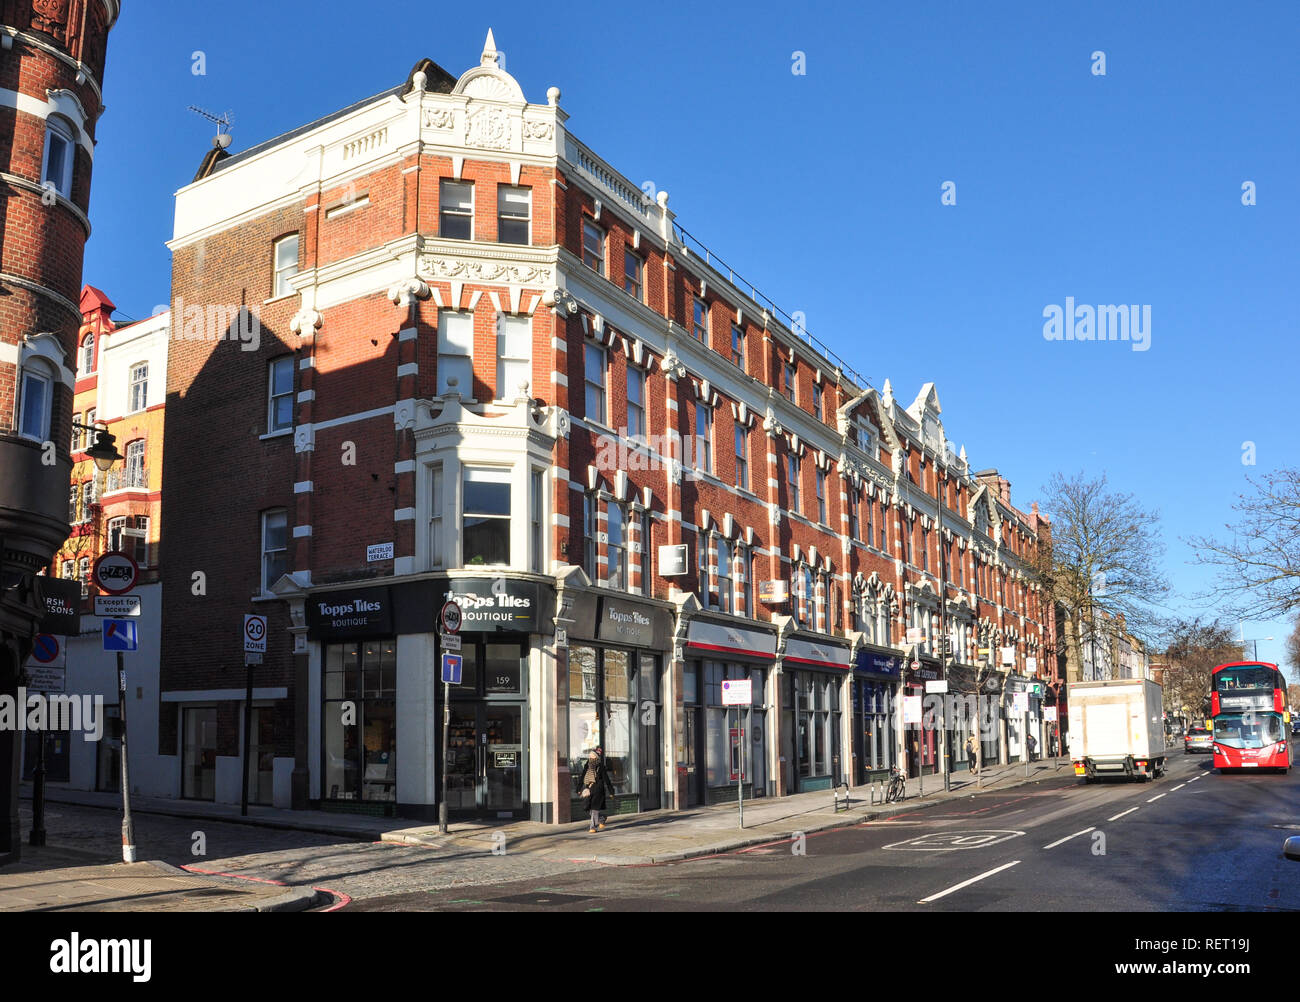 Upper Street and corner with Waterloo Terrace, Islington, London, England, UK - Stock Image